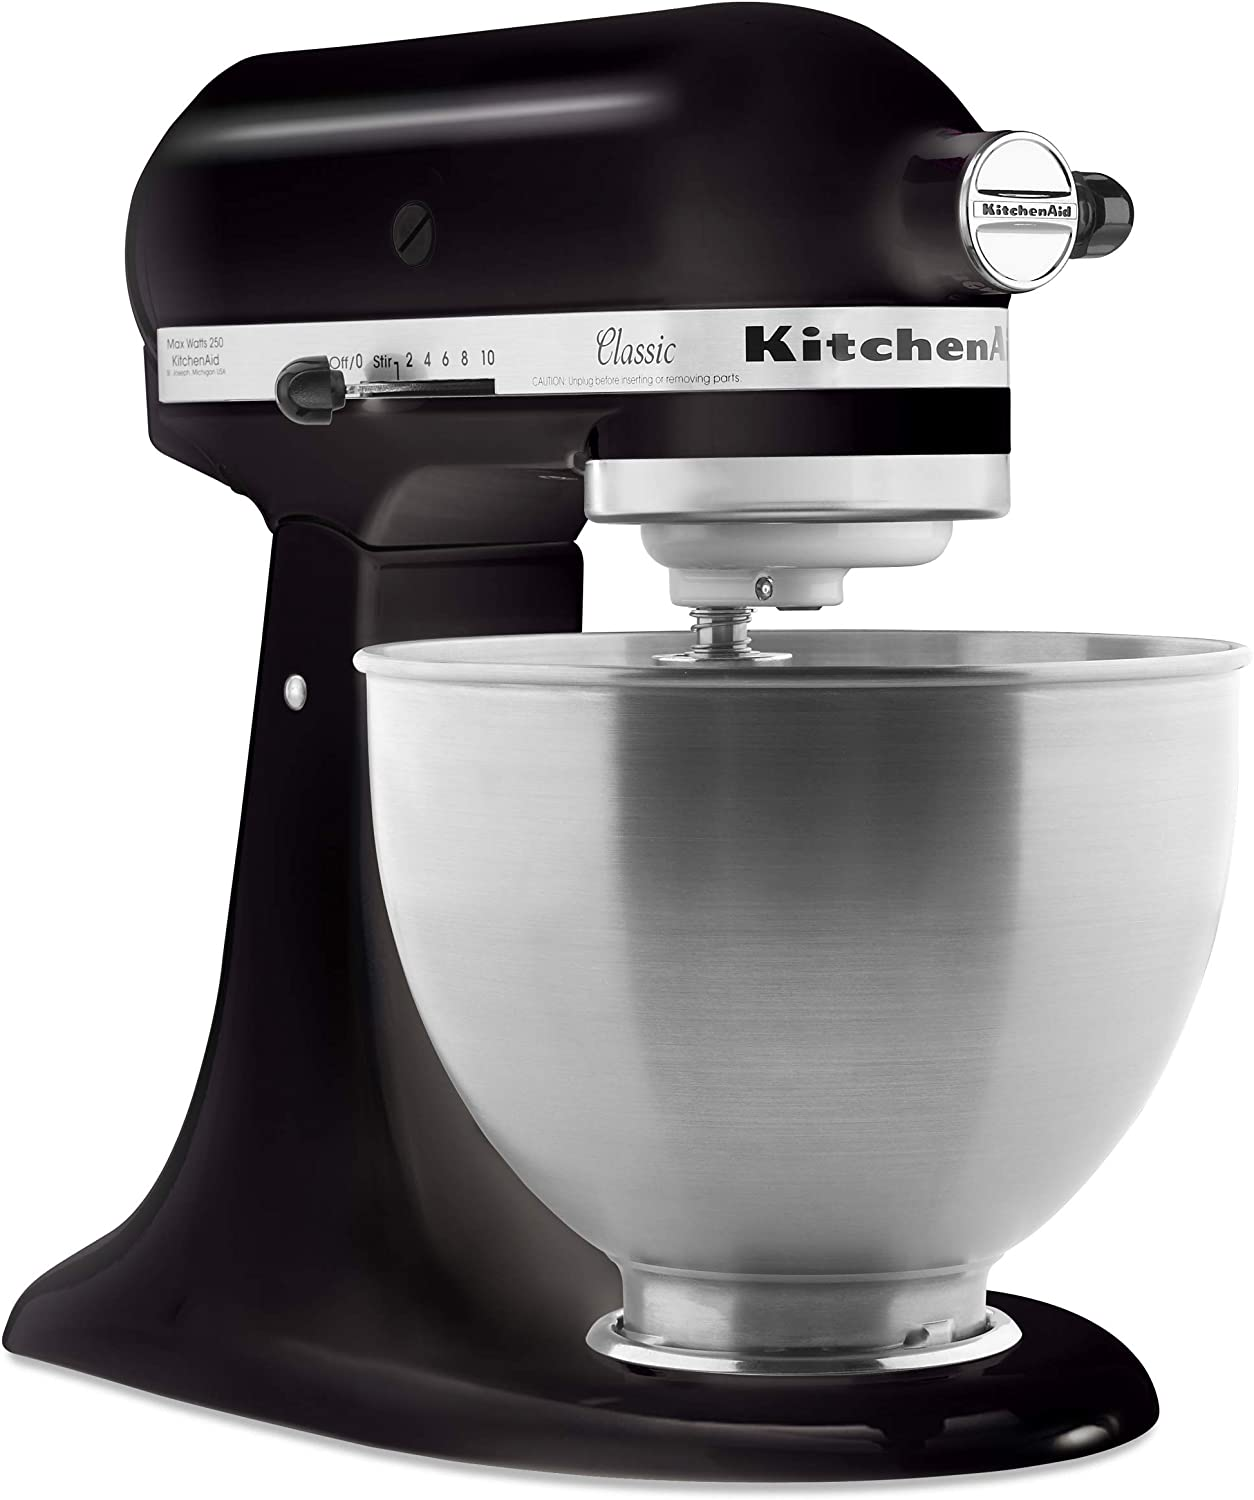 Which Best Buy Stand Mixer For Home Use (Baking, Sale, Bread) (2020)